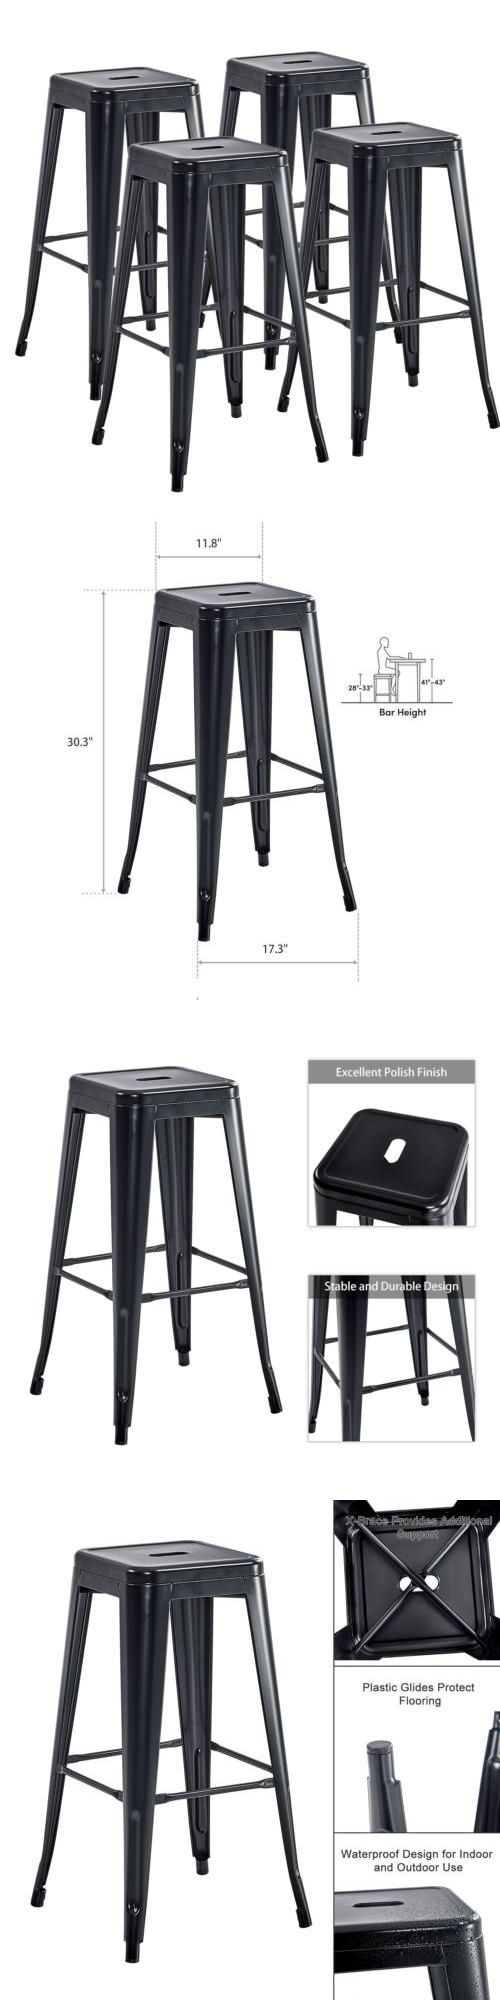 Bar Stools 153928 Set Of 4 Industrial Metal Bar Stools 30 High